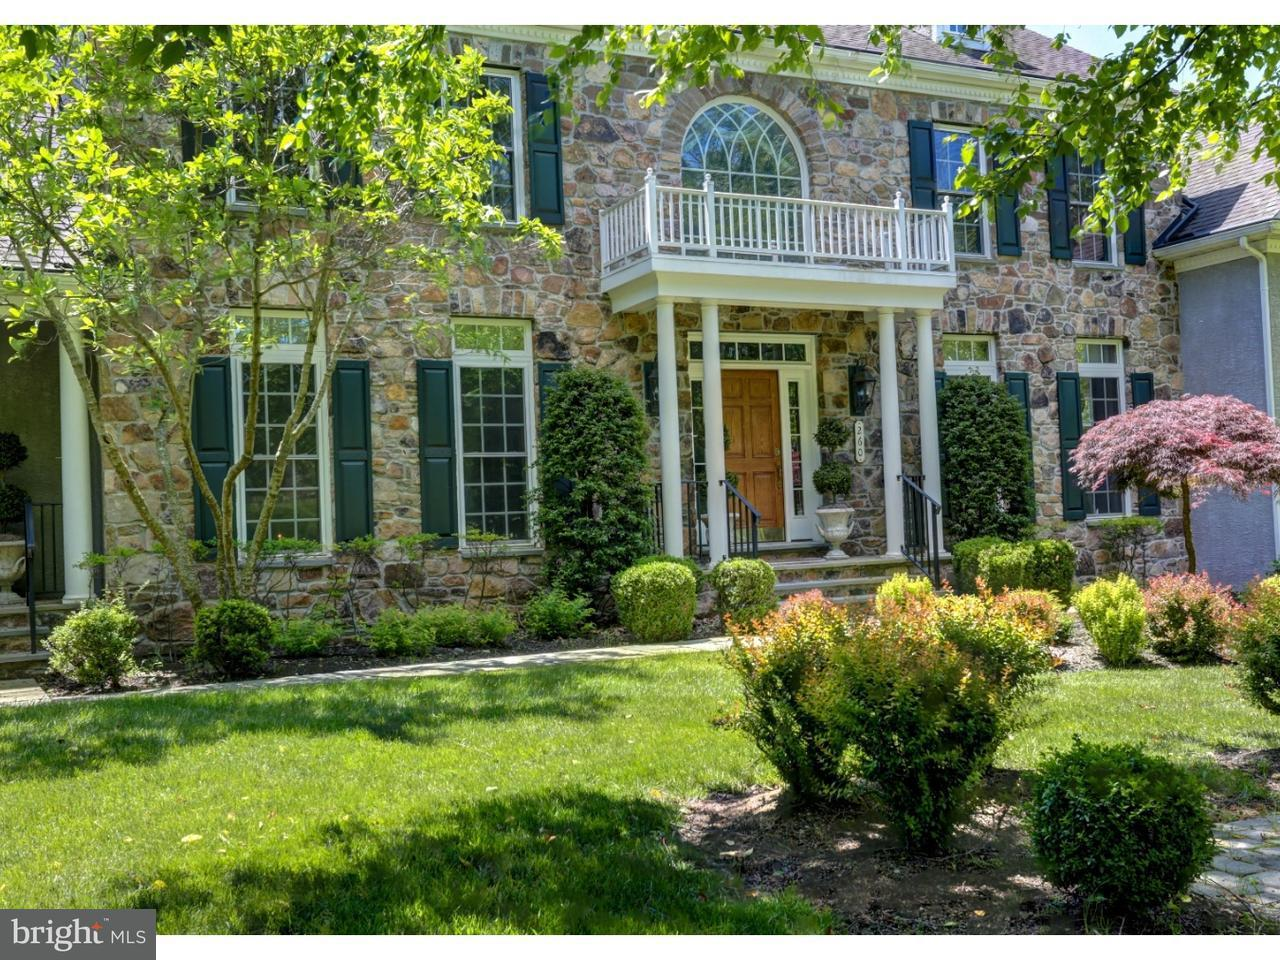 Single Family Home for Sale at 260 VALLEY PARK Road Phoenixville, Pennsylvania 19460 United States